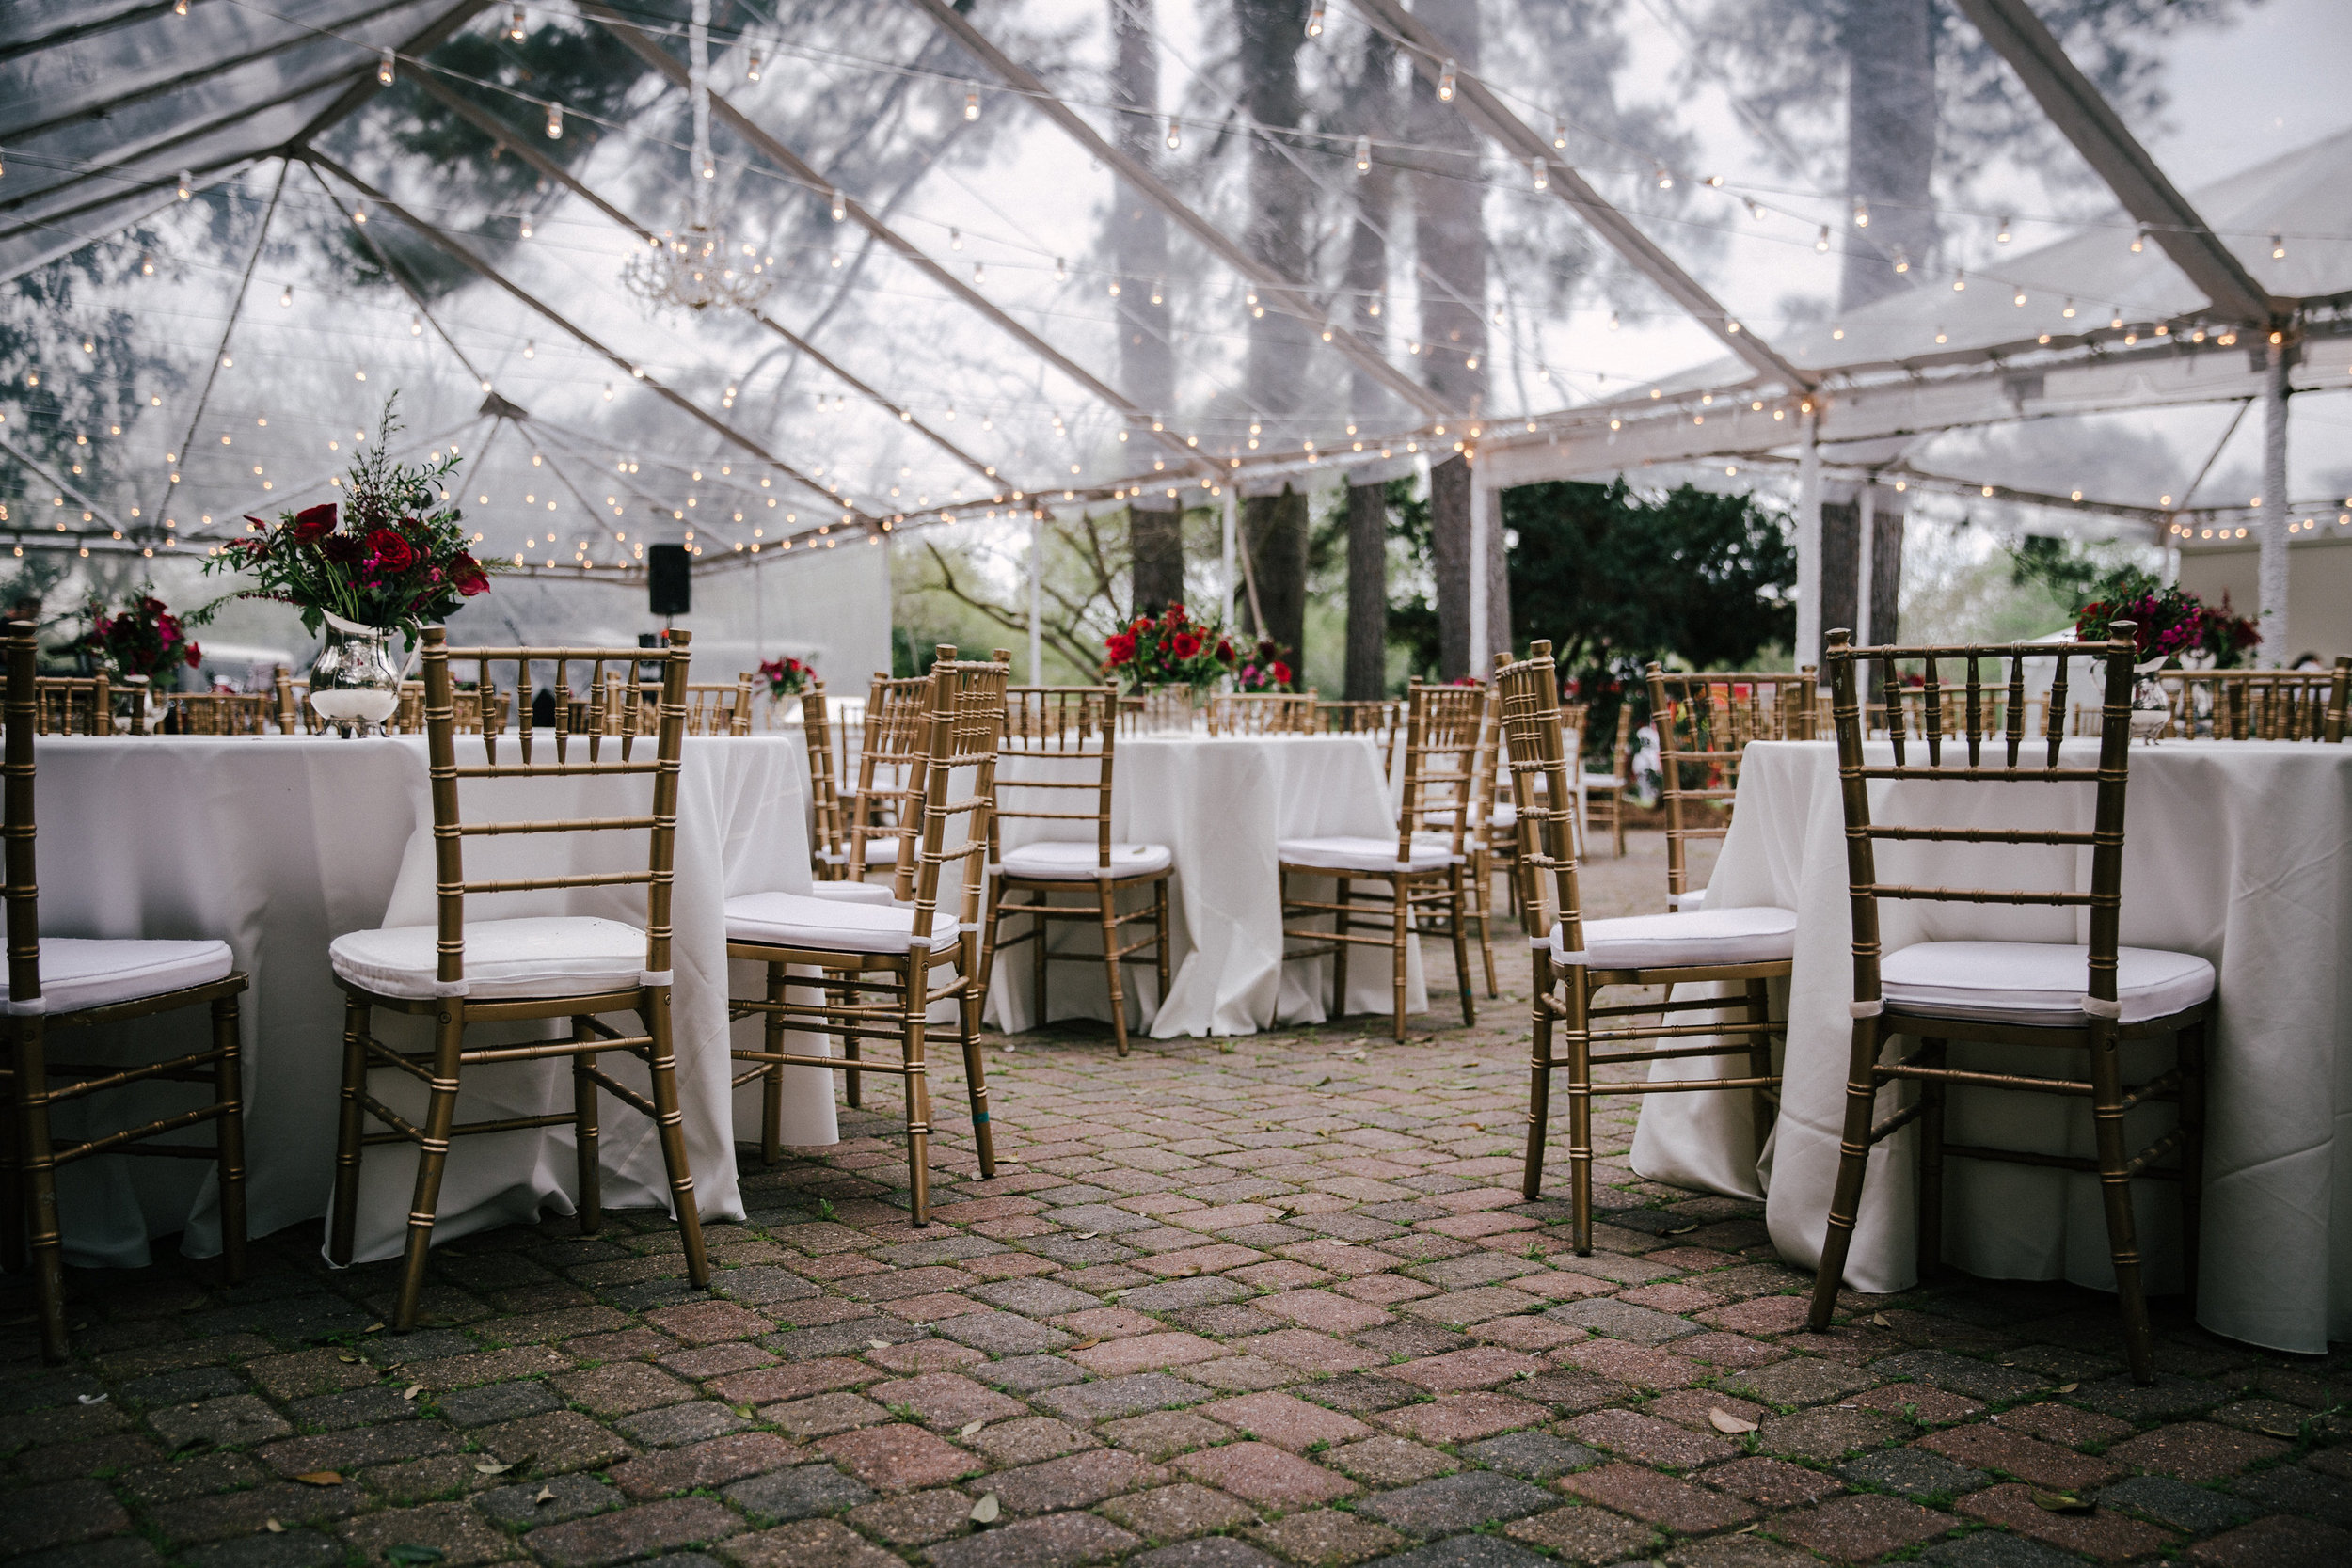 Southern Fete, Southern Wedding, Reception, Tent Wedding, 63 Films